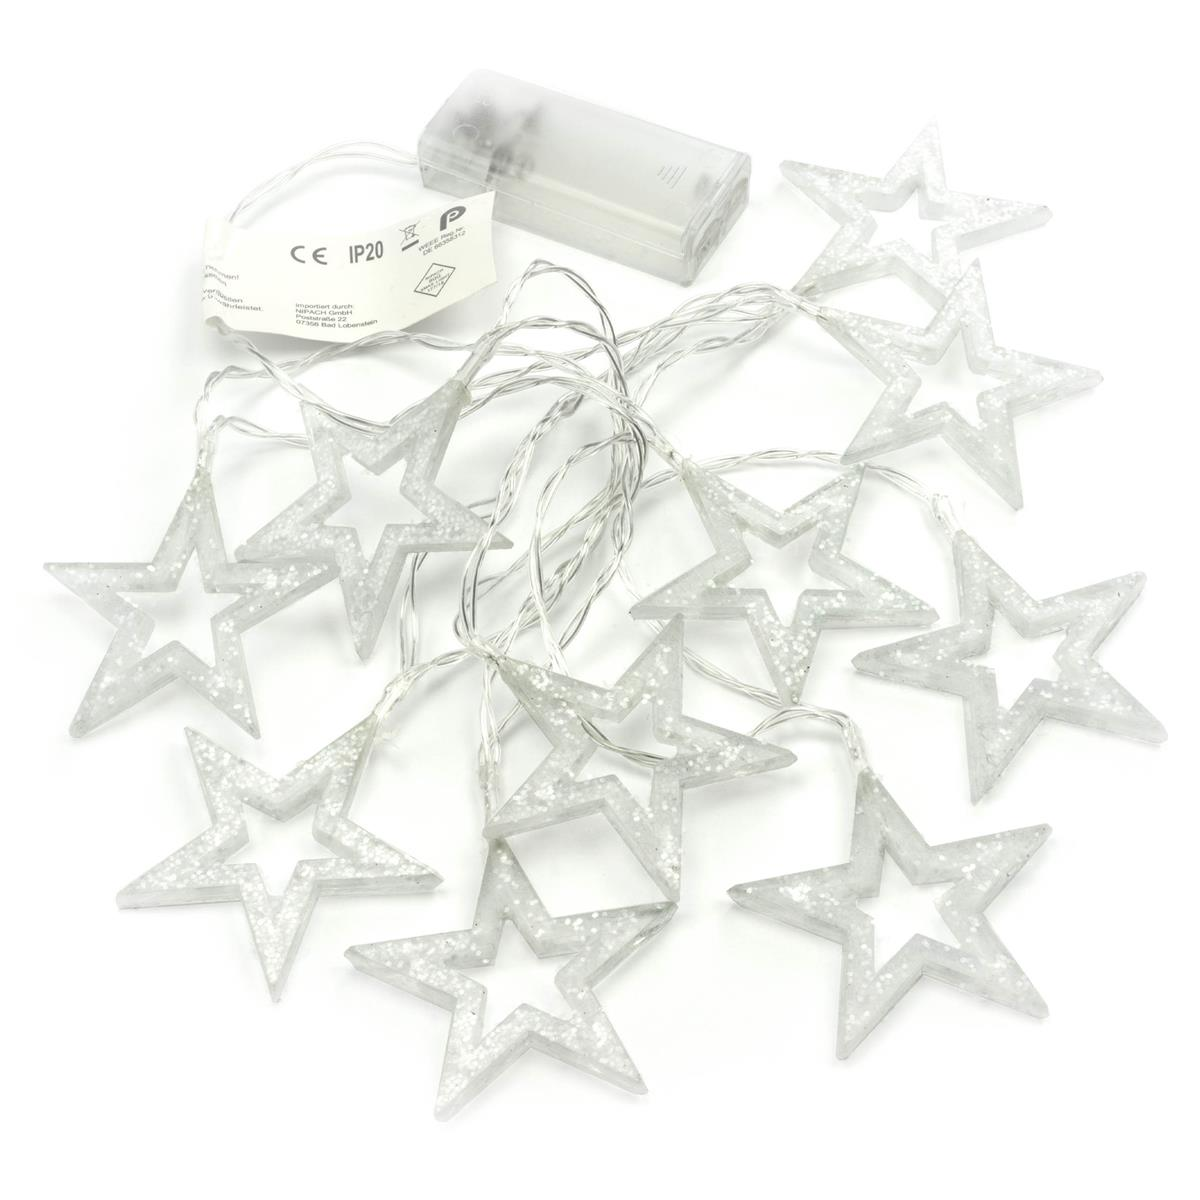 "2er Set 10 LED Lichterkette ""Glitzersterne"" warm weiß Ø 6,5 cm Batterie Xmas"